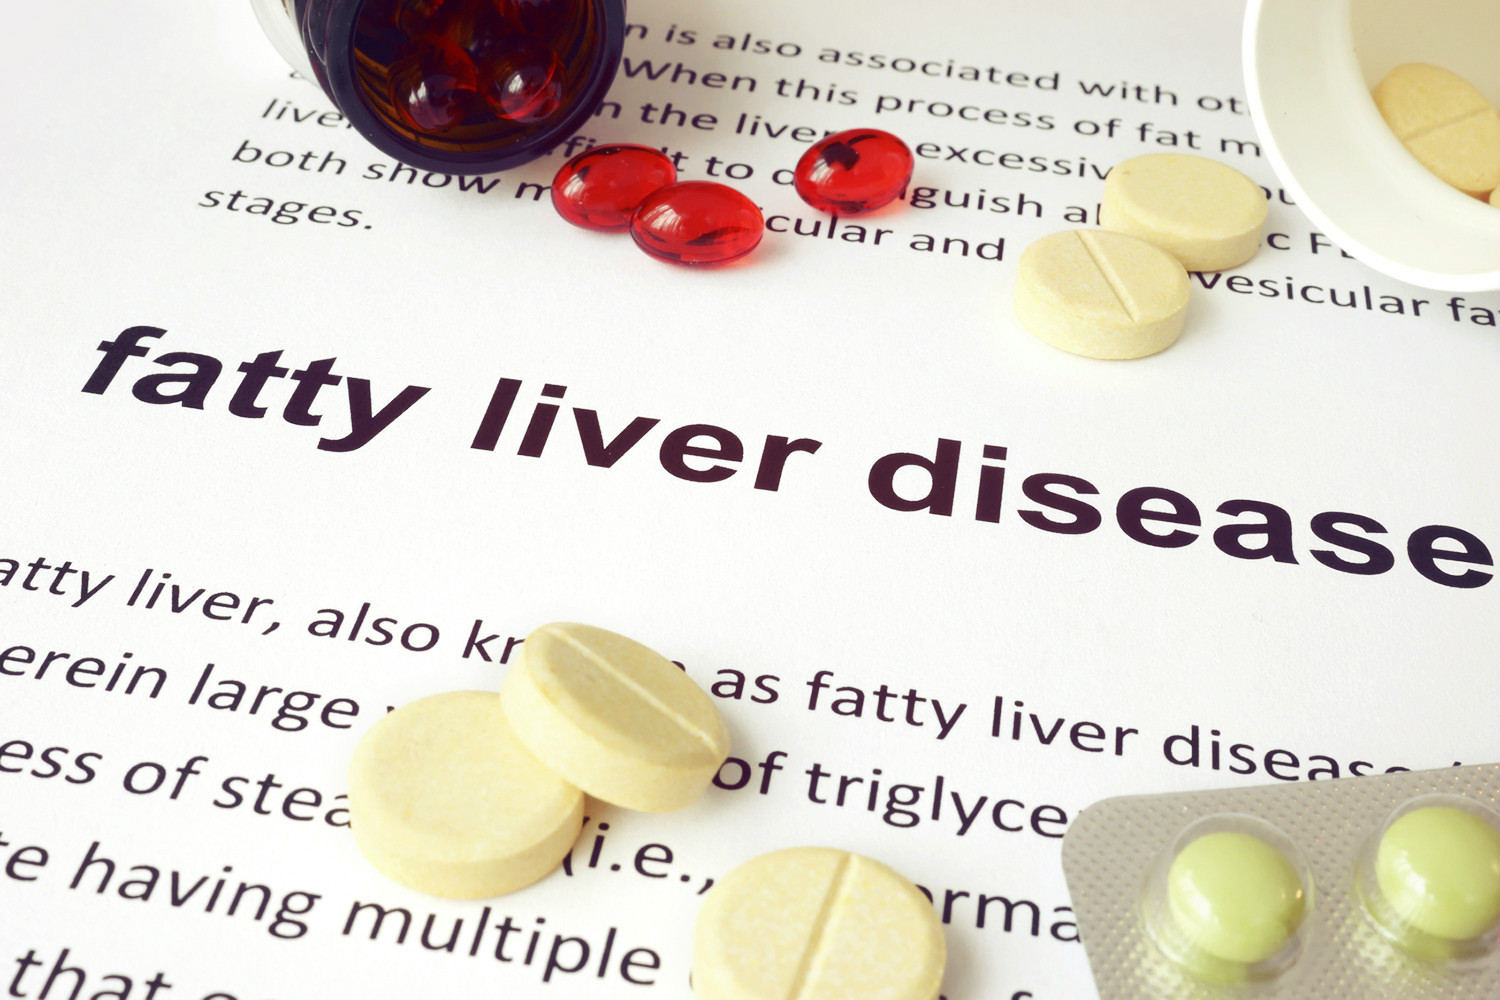 Types of Liver Disease